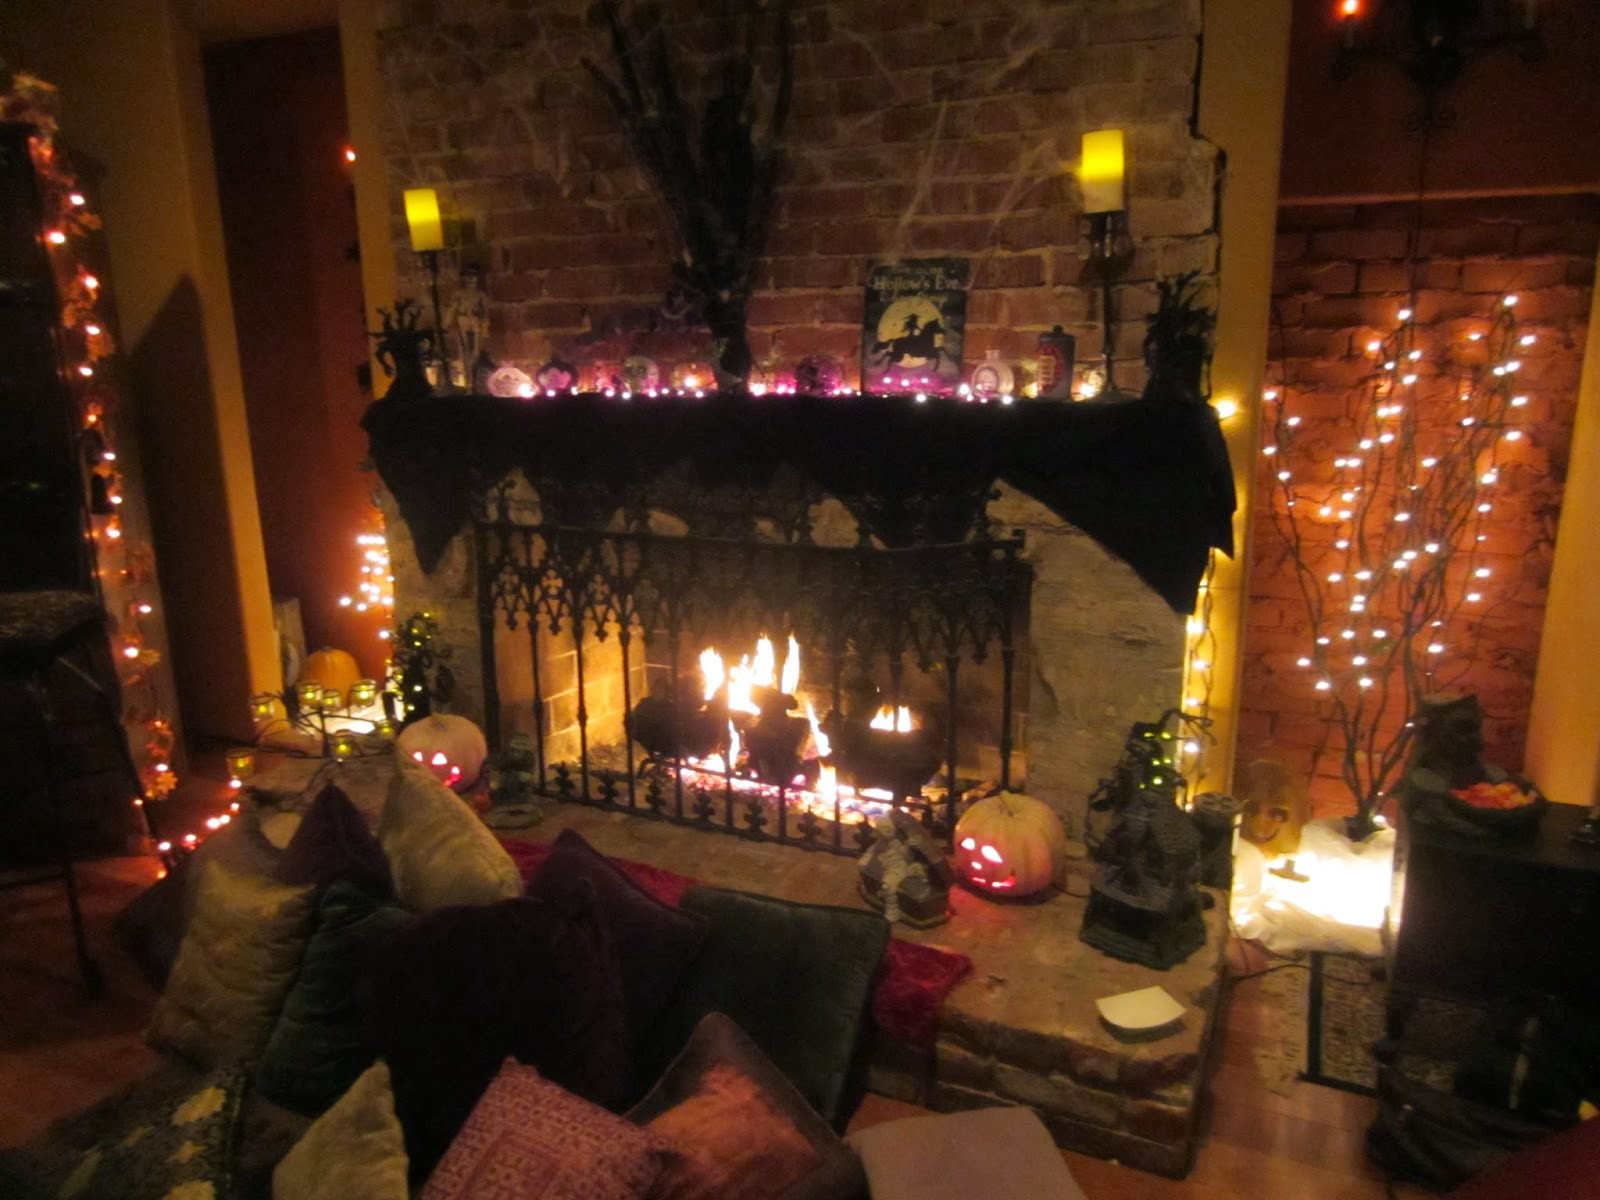 Halloween Decorating Party Ideas  Hd Wallpapers Blog Halloween Party Decorating Ideas